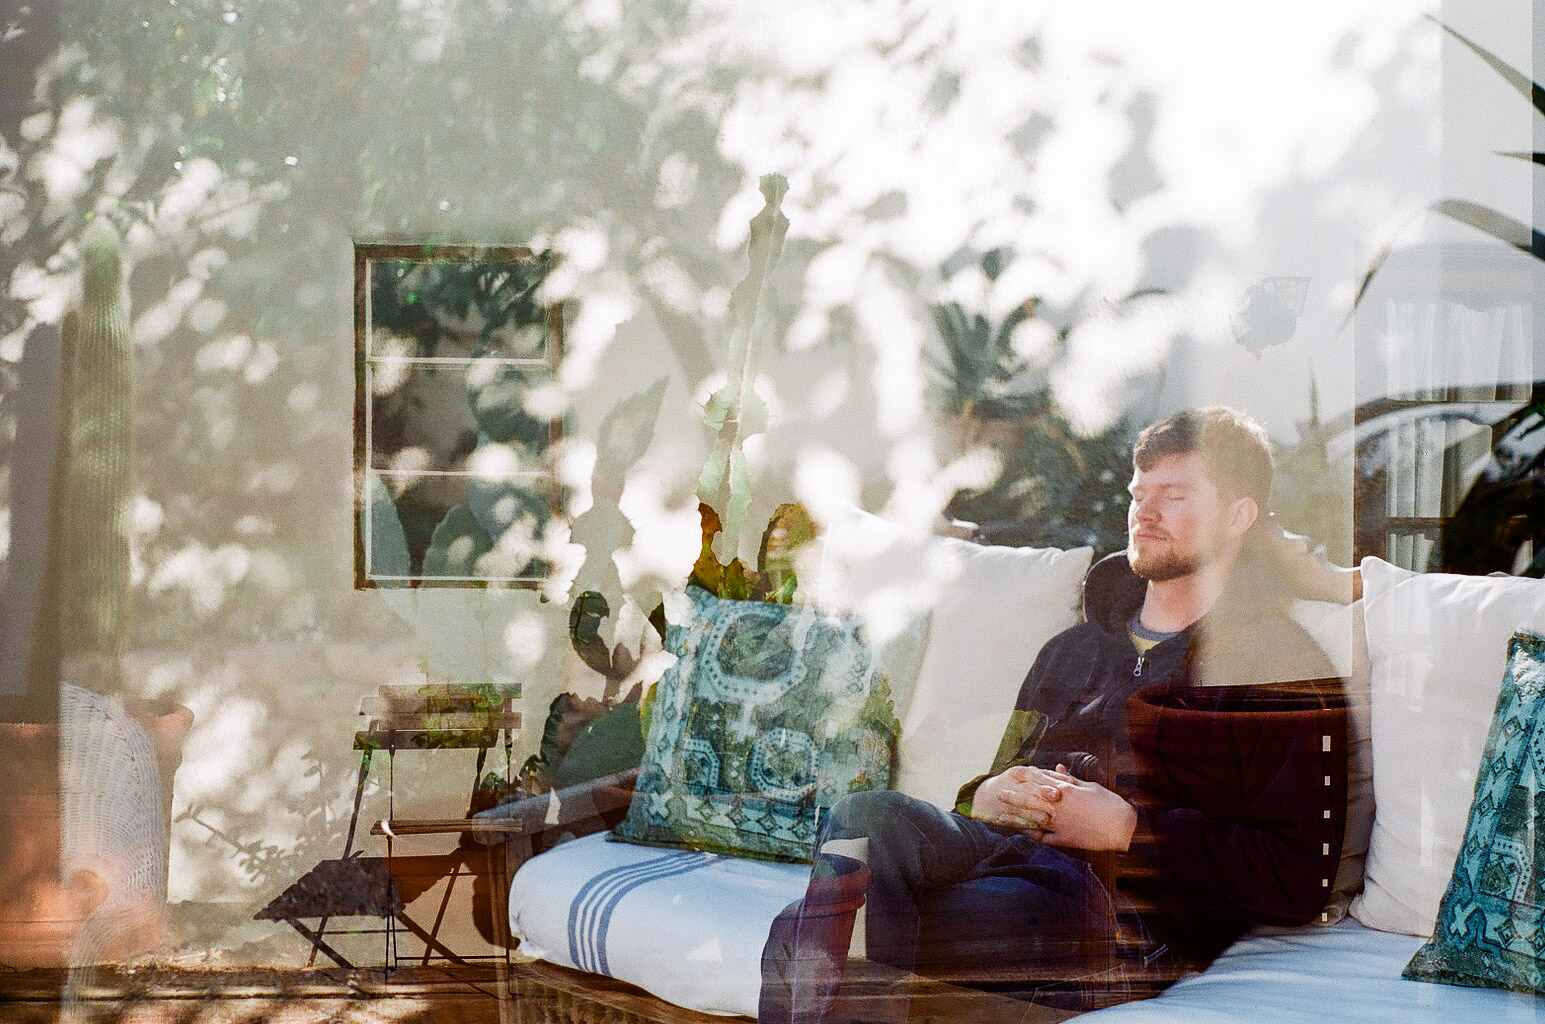 An accidental double-exposure perfectly depicts the dreamy, sun-drenched, luxurious mornings of Palm Springs.